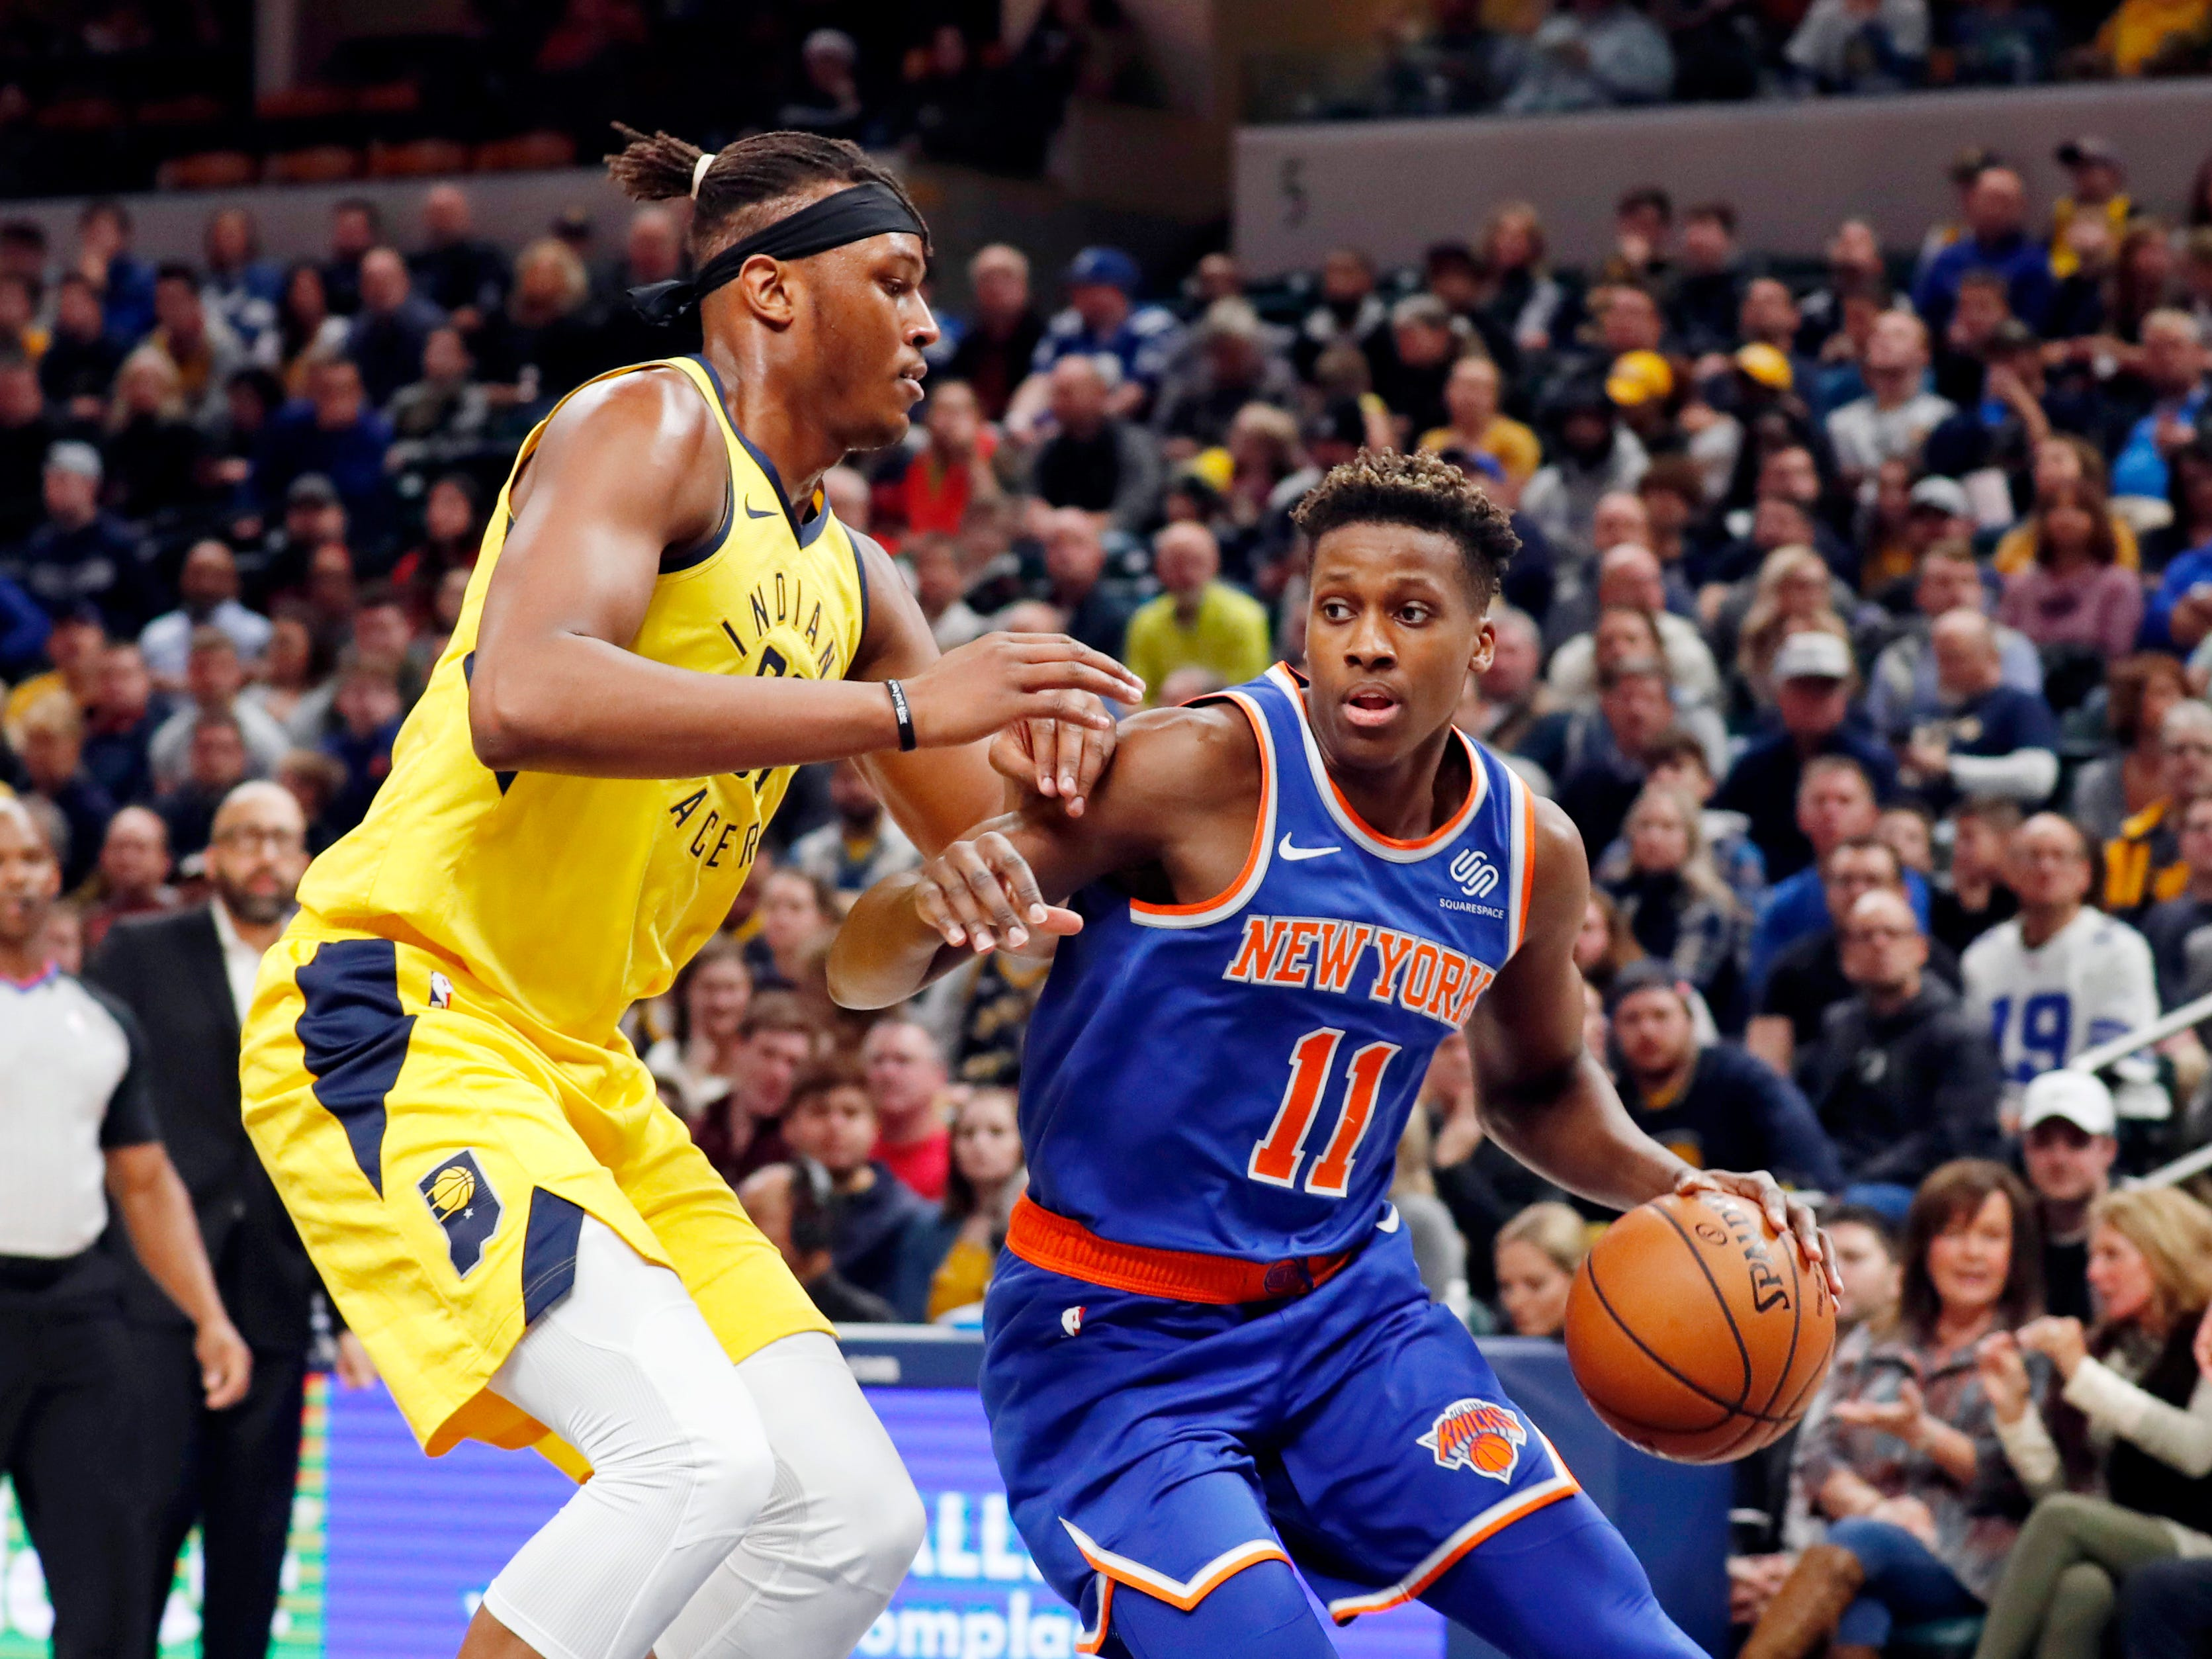 Dec 16, 2018; Indianapolis, IN, USA; New York Knicks guard Frank Ntilikina (11) drives to the basket against Indiana Pacers center Myles Turner (33) during the first quarter at Bankers Life Fieldhouse.